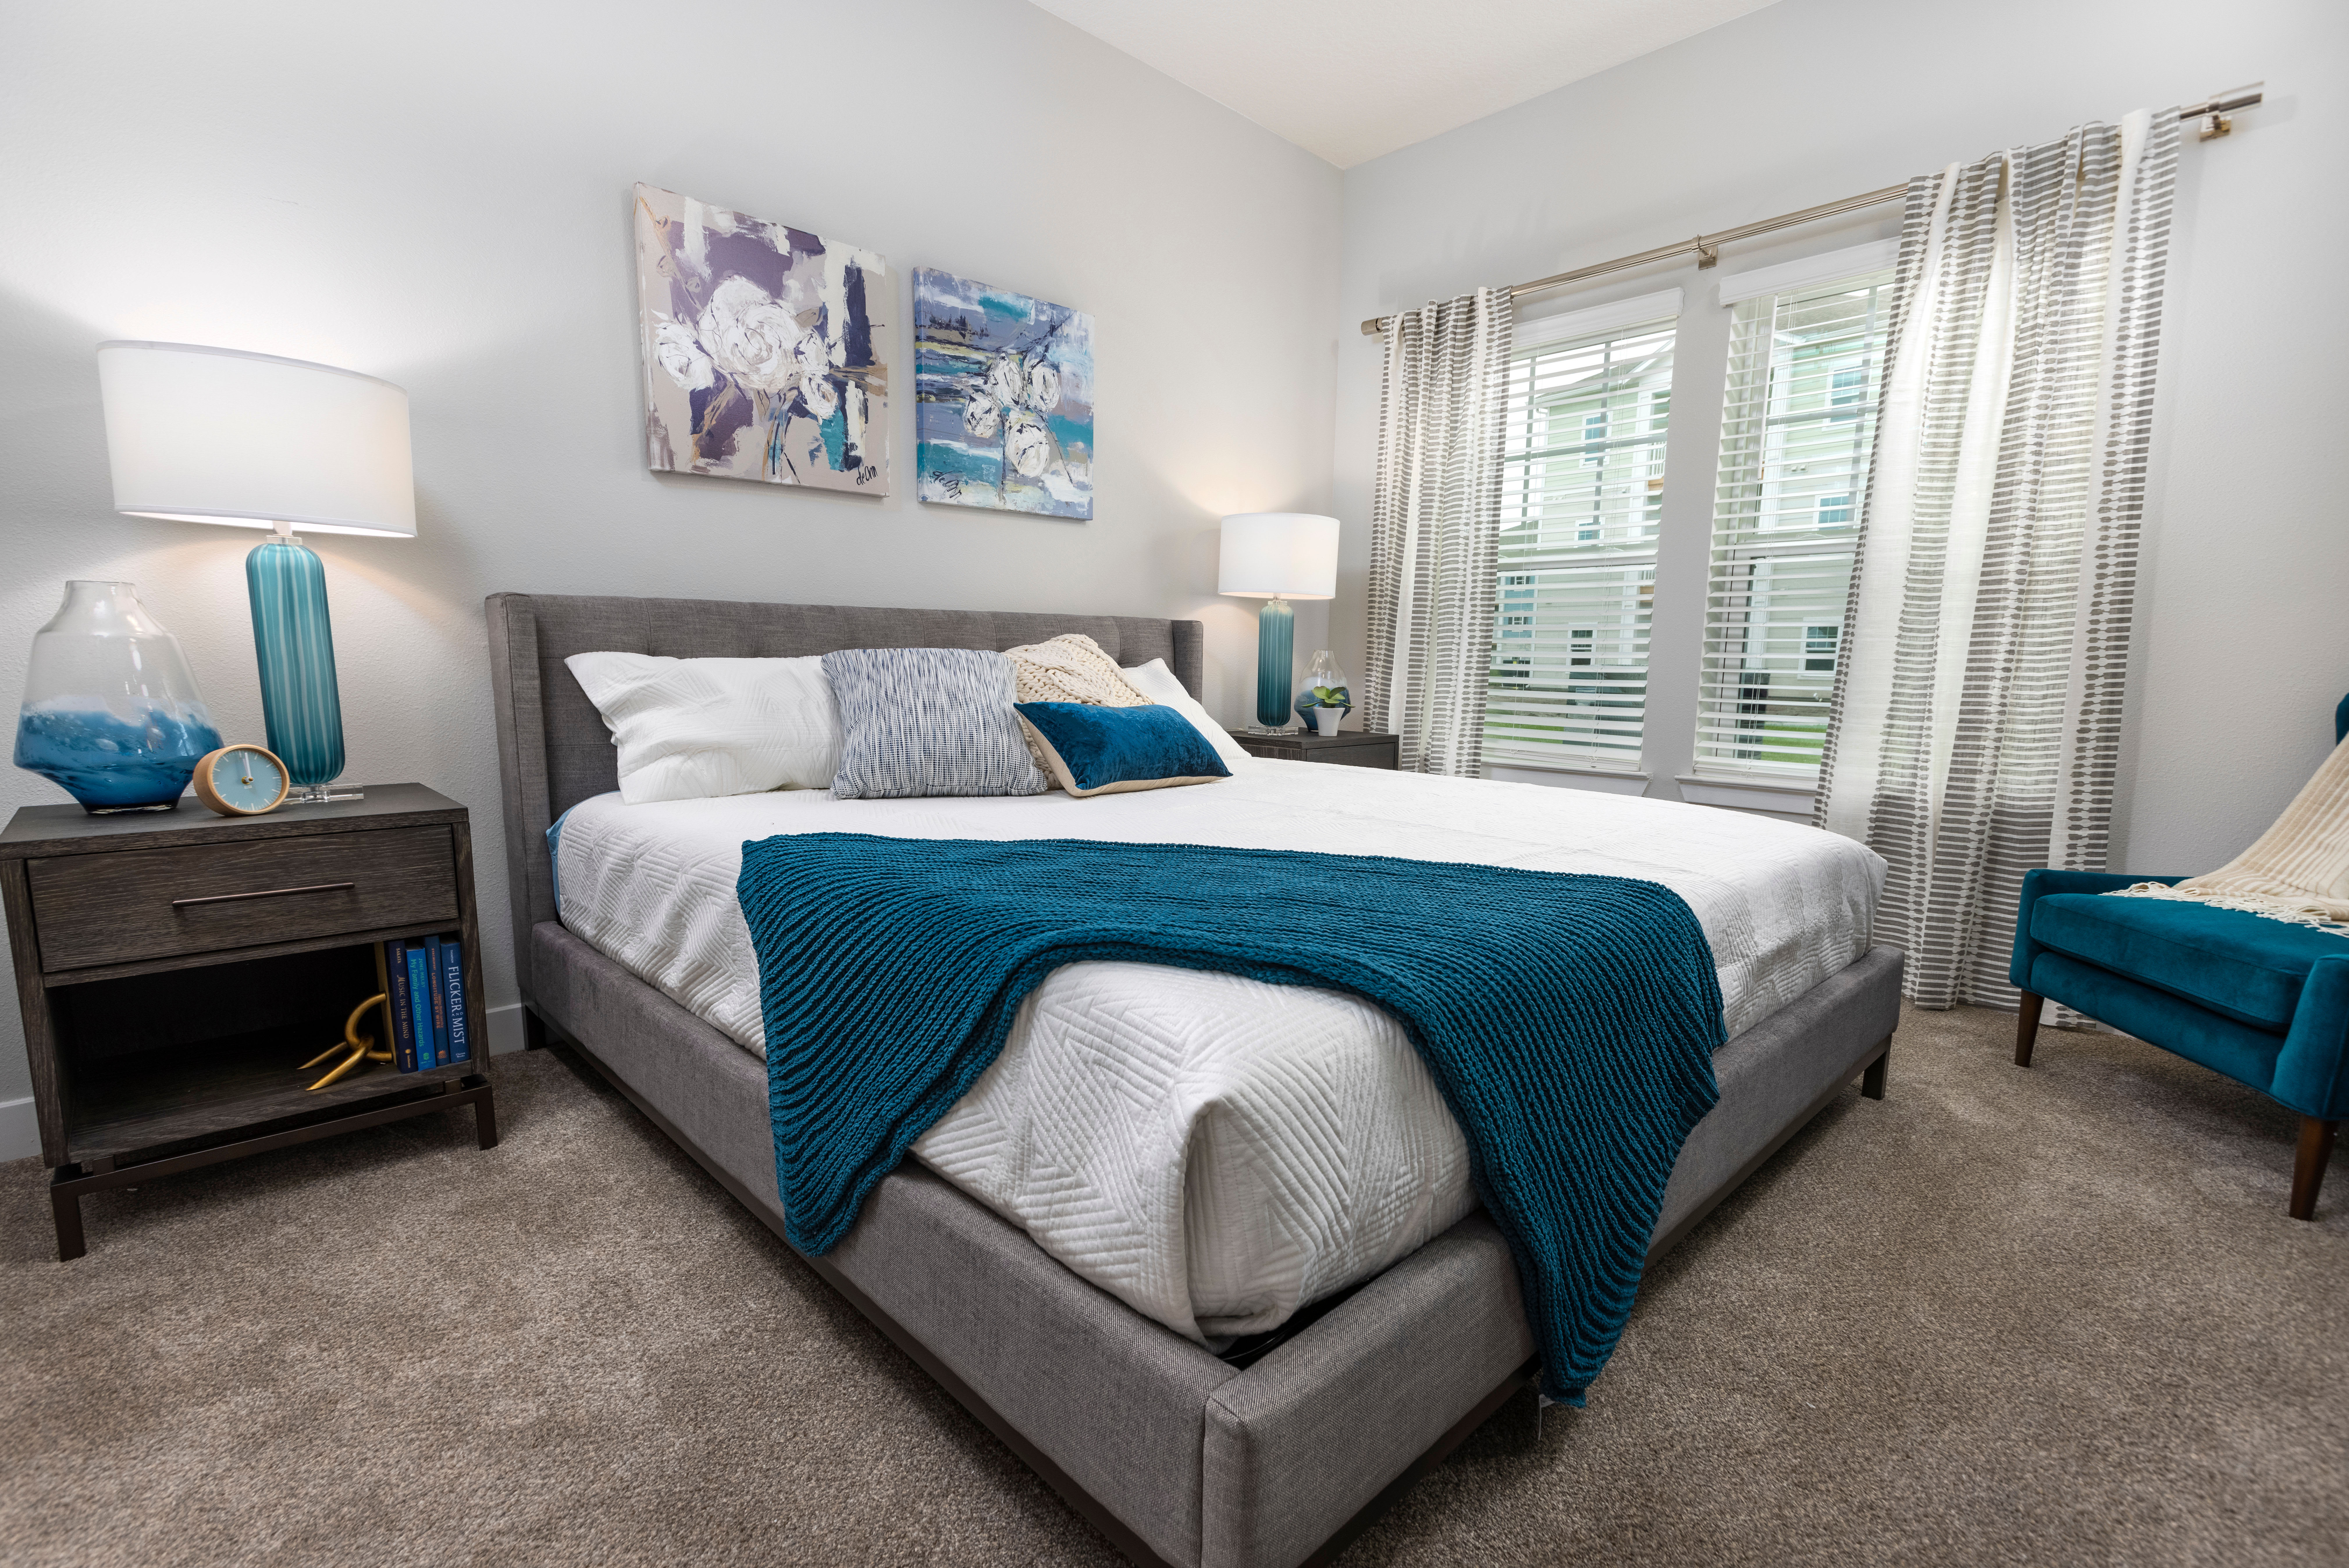 View virtual tour for 1 bedroom 1 bathroom unit at The Isaac in Summerville, South Carolina